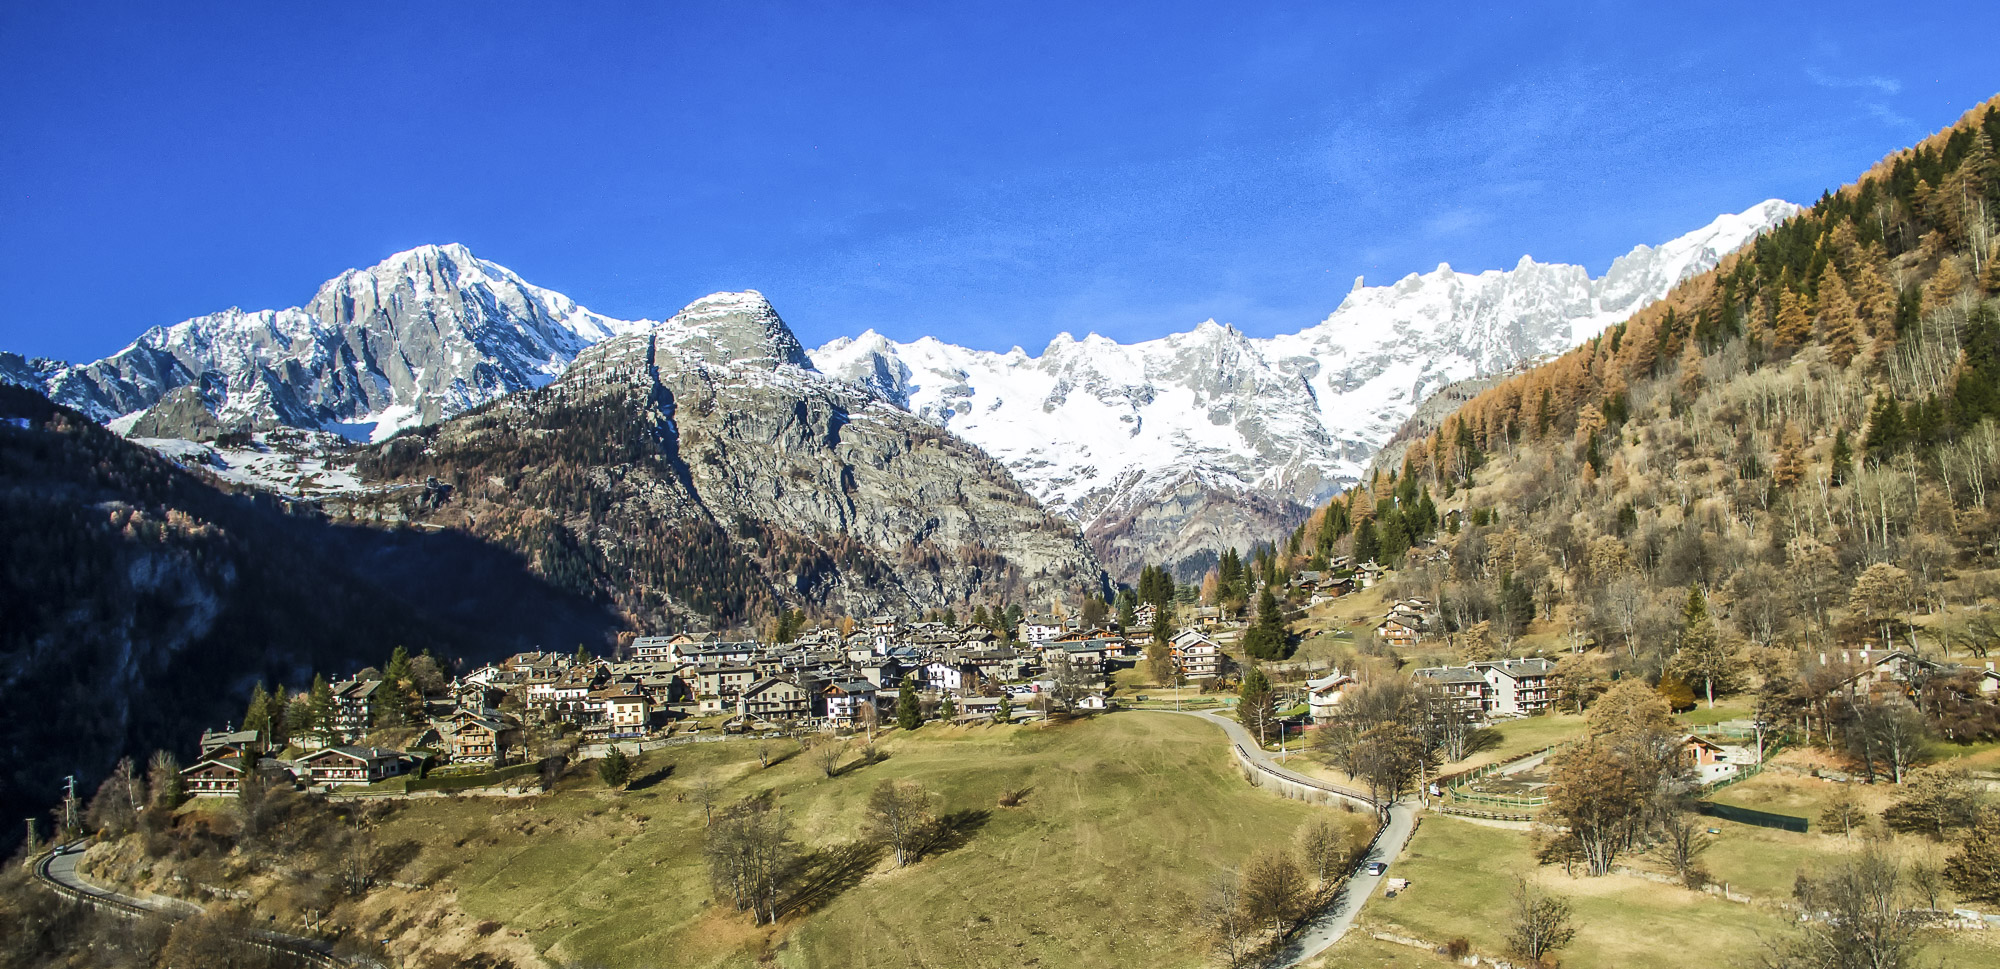 Courmayeur - DJI_0150-Modifica-Modifica.jpg